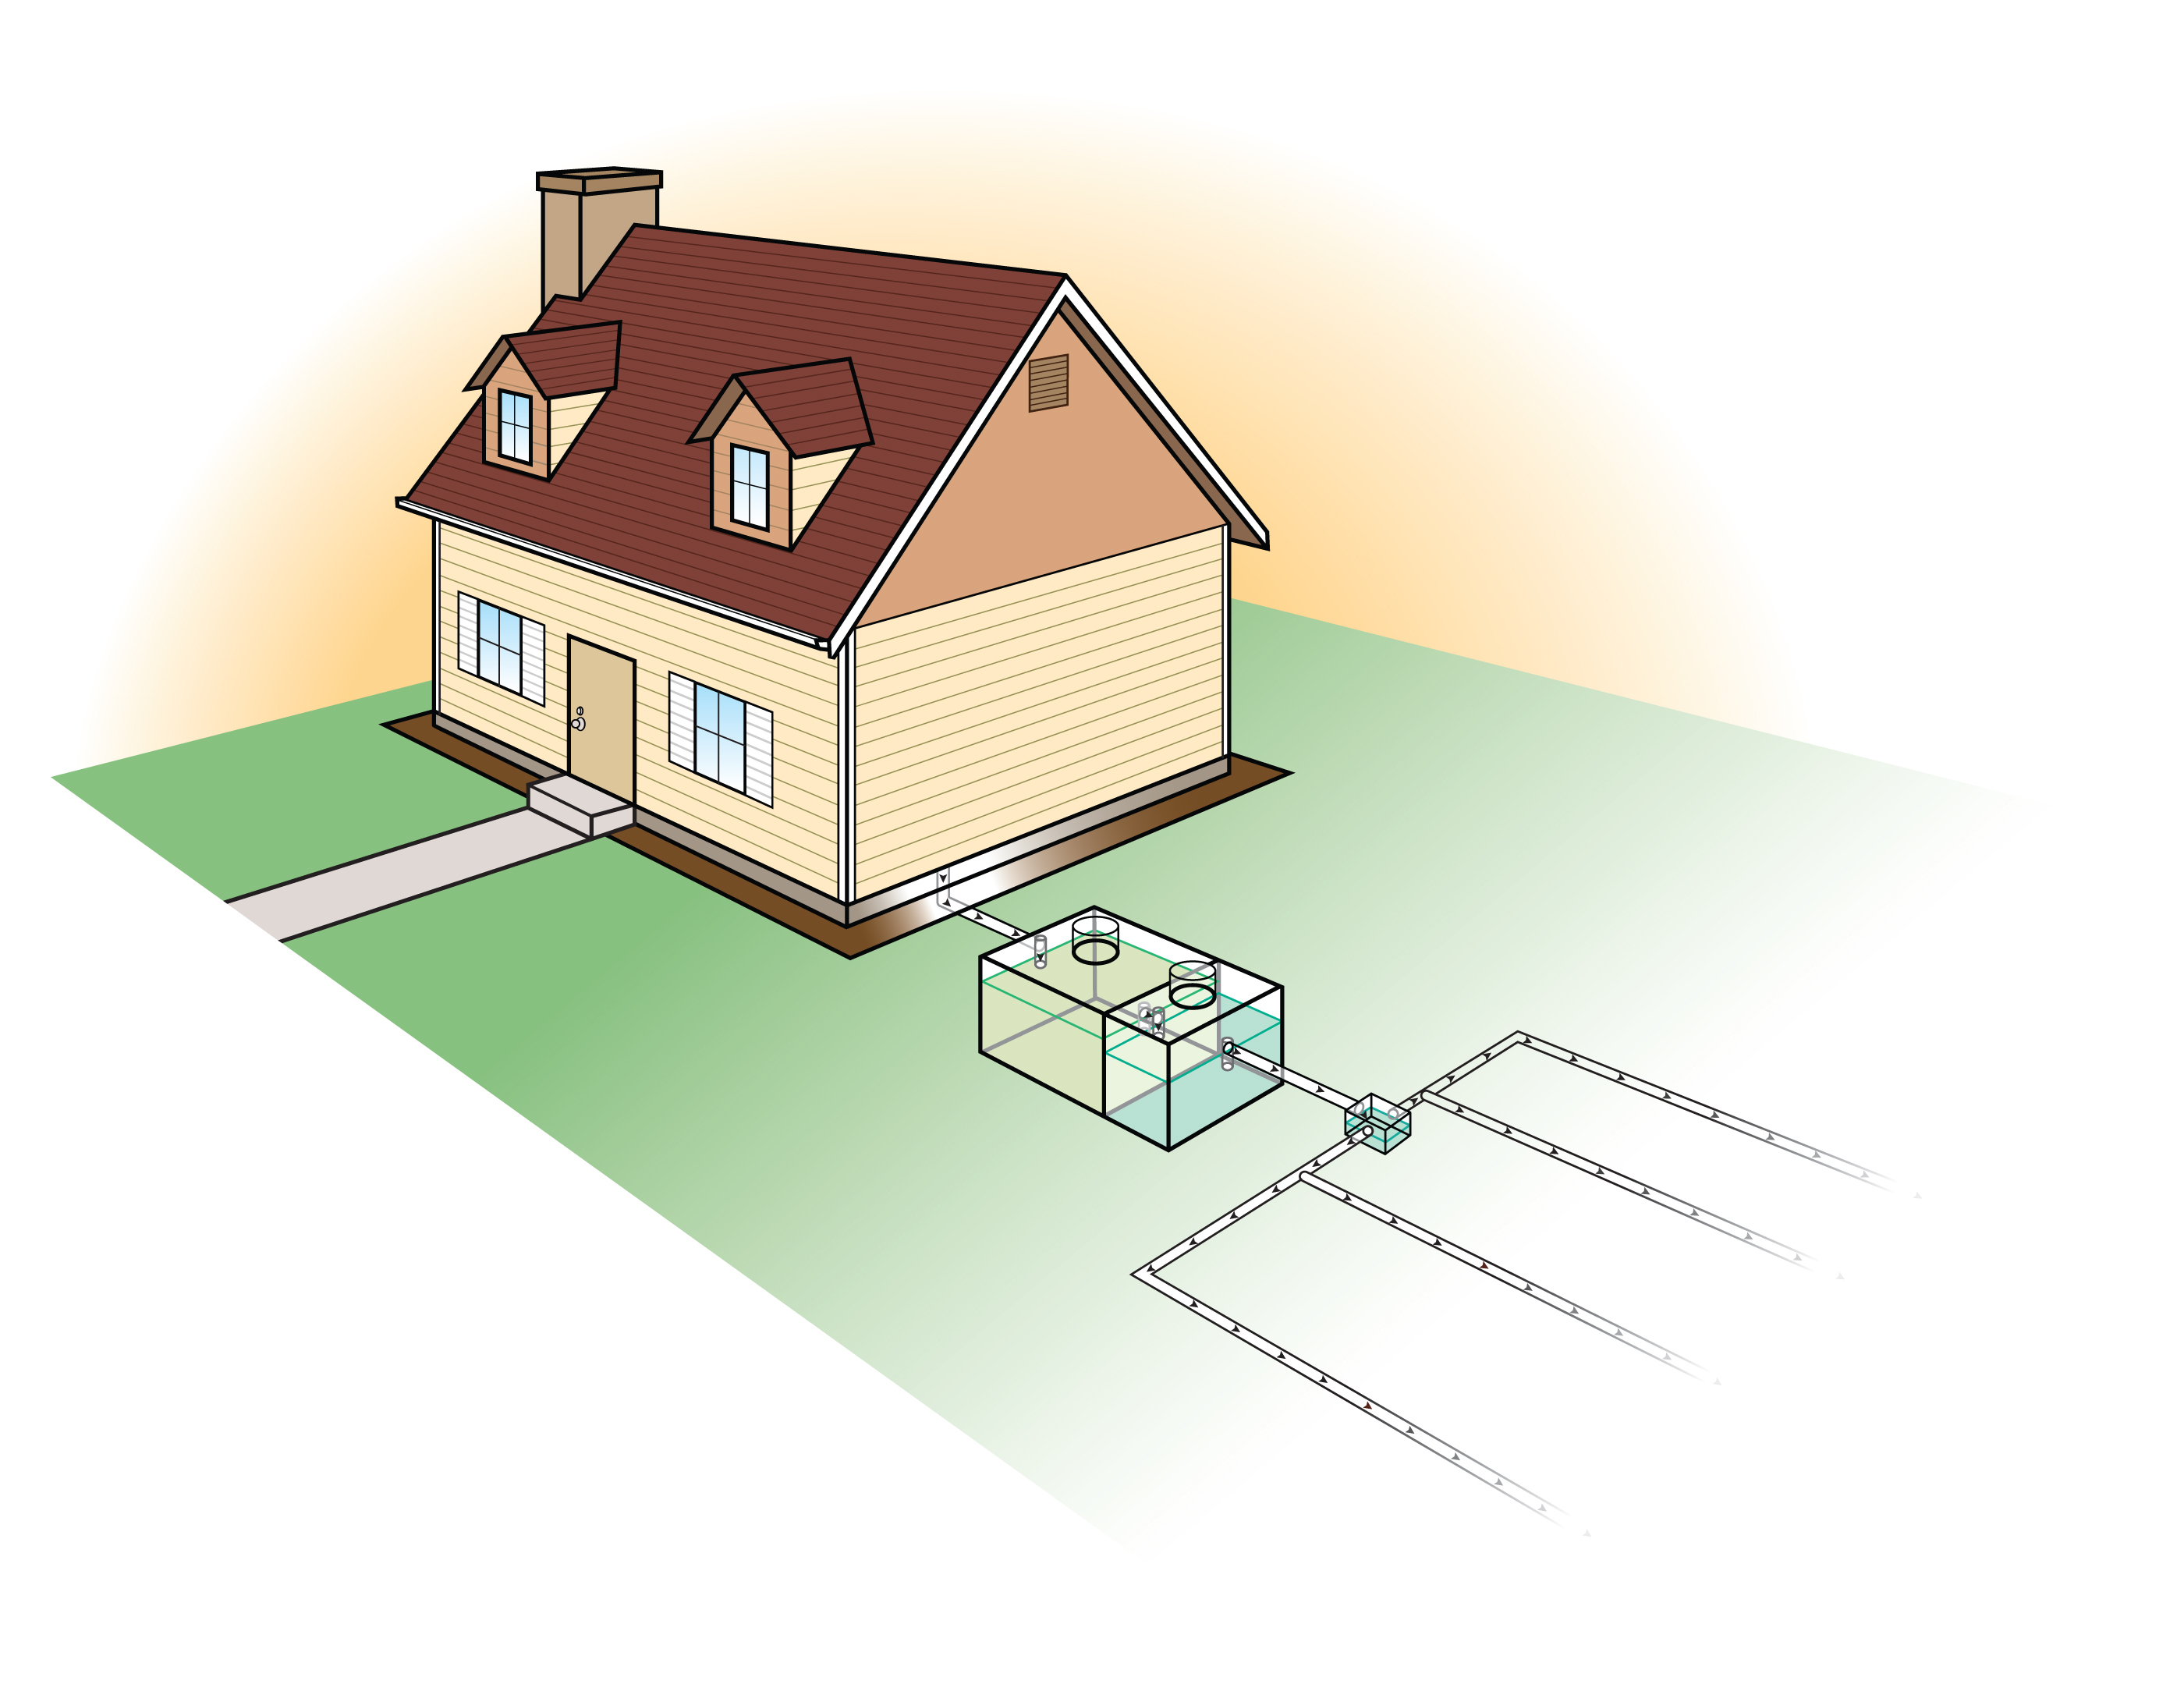 Sewer vs Septic Systems